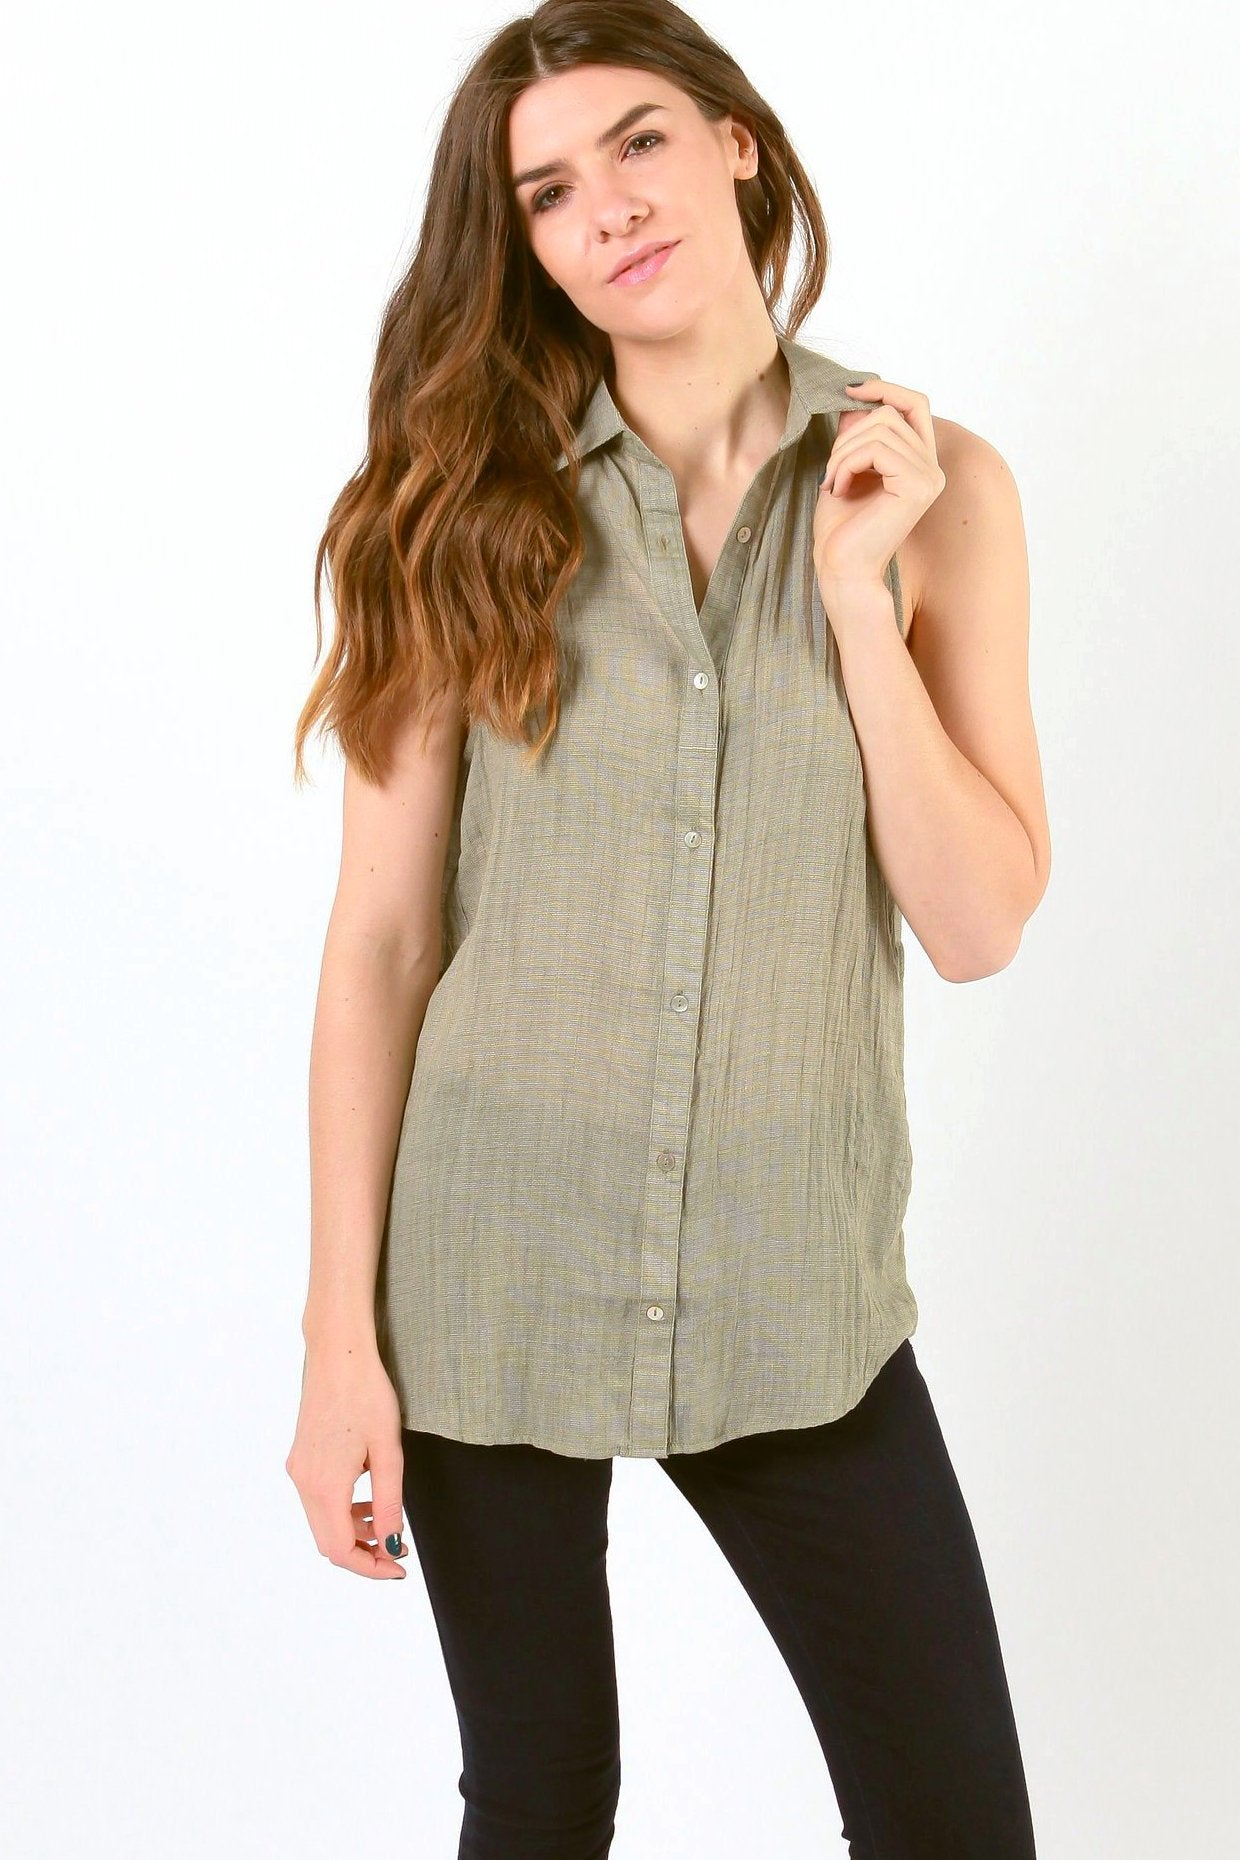 Nina Sleeveless Button Up Top - Olive